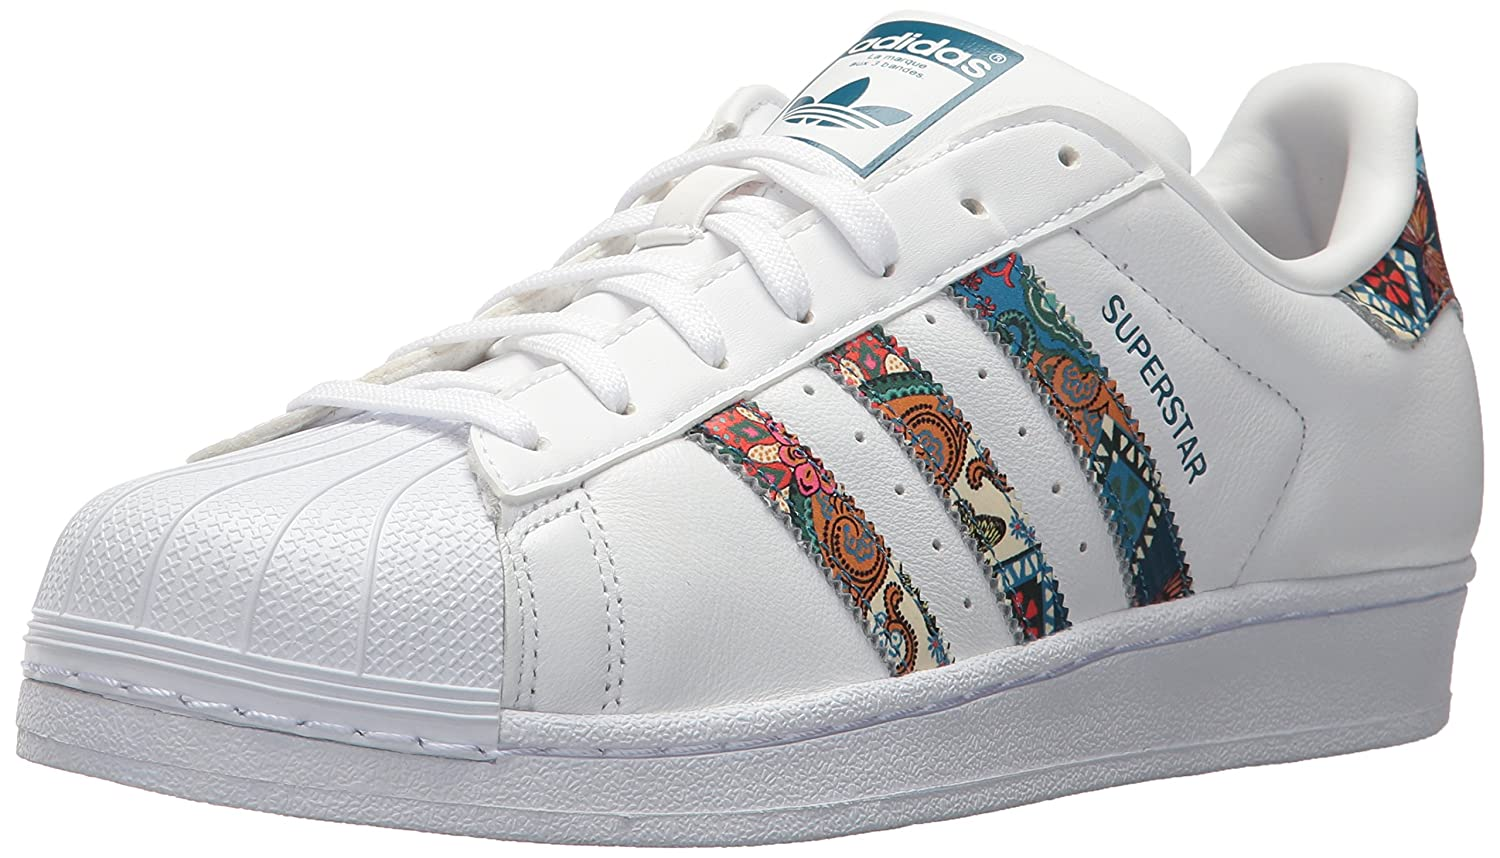 adidas Women's Originals Superstar B01N4G98OV 5.5 B(M) US|White/White/Noble Teal